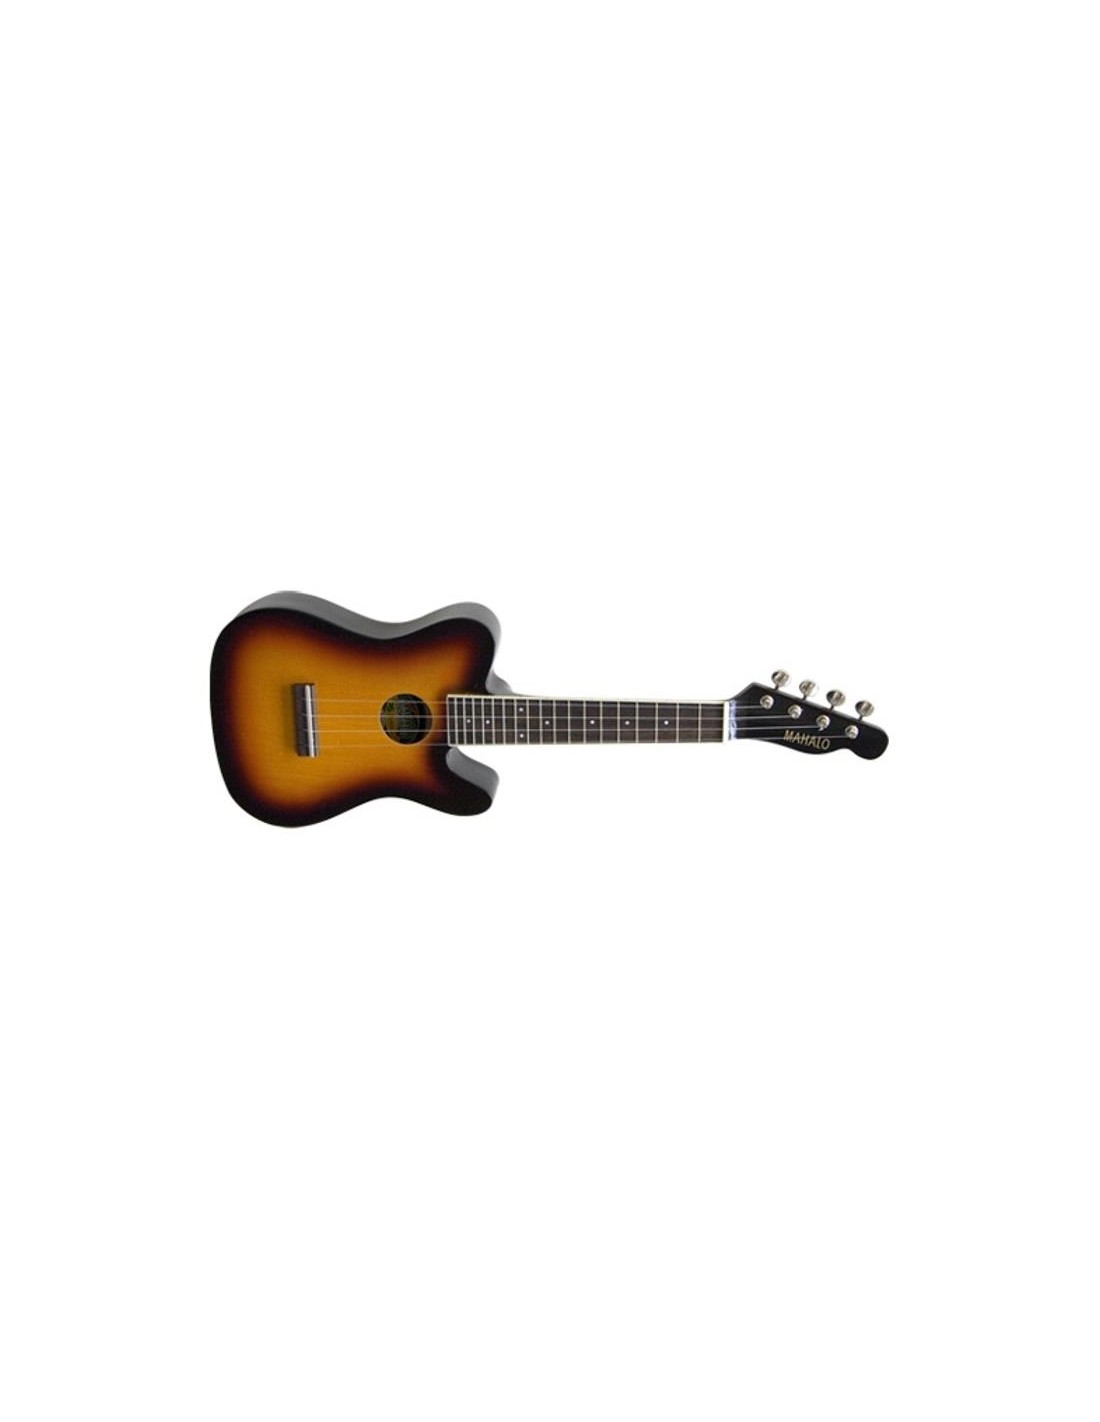 dating vintage epiphone guitars Shop from the world's largest selection and best deals for vintage bass guitars vintage epiphone et-285 bass guitar according to the gibson dating.